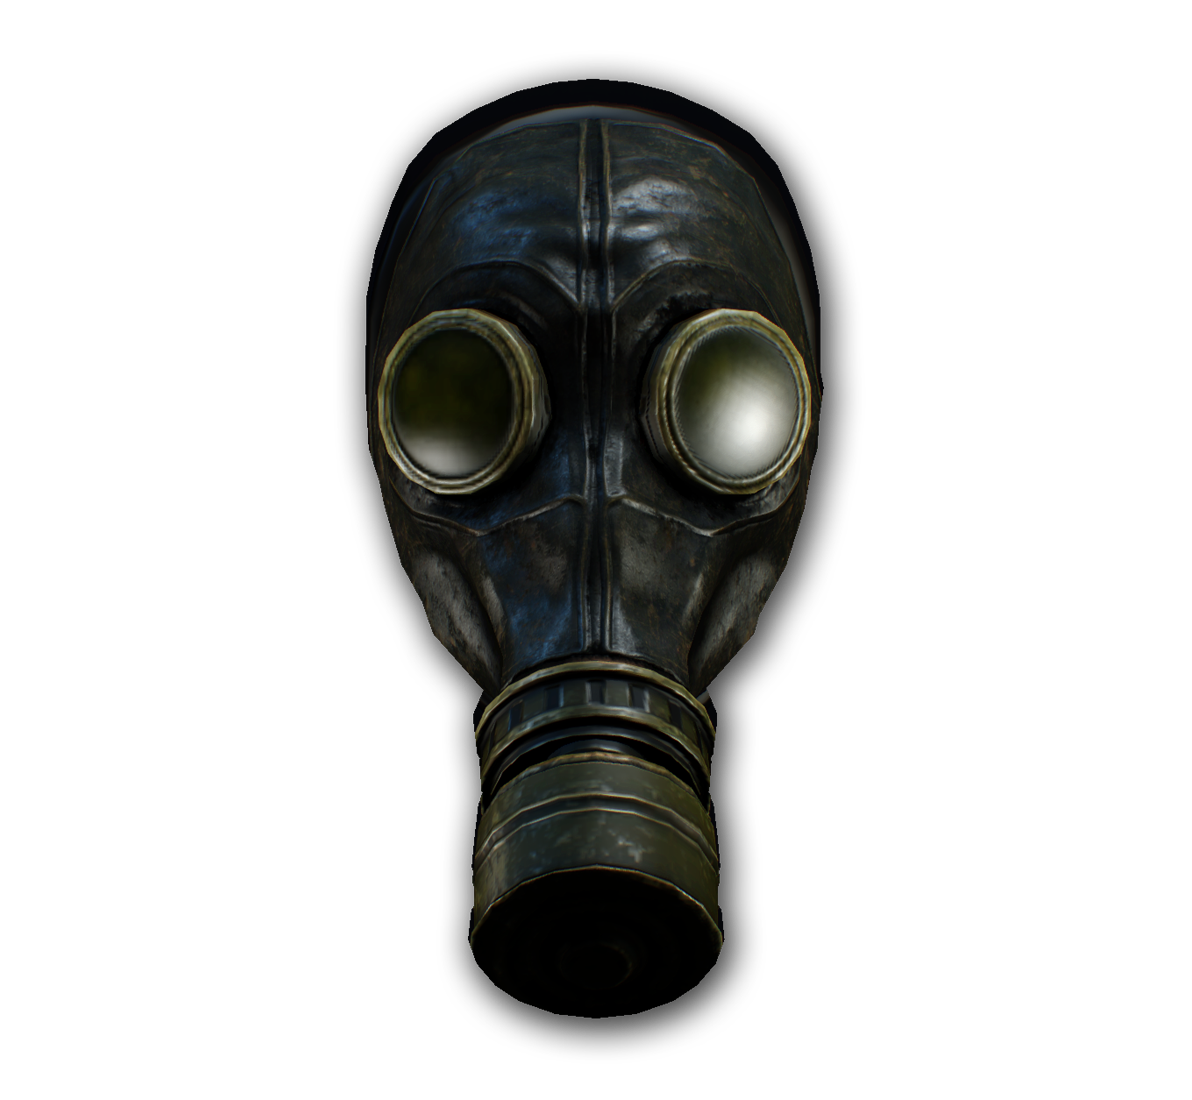 Download Gas Mask Picture HQ PNG Image | FreePNGImg